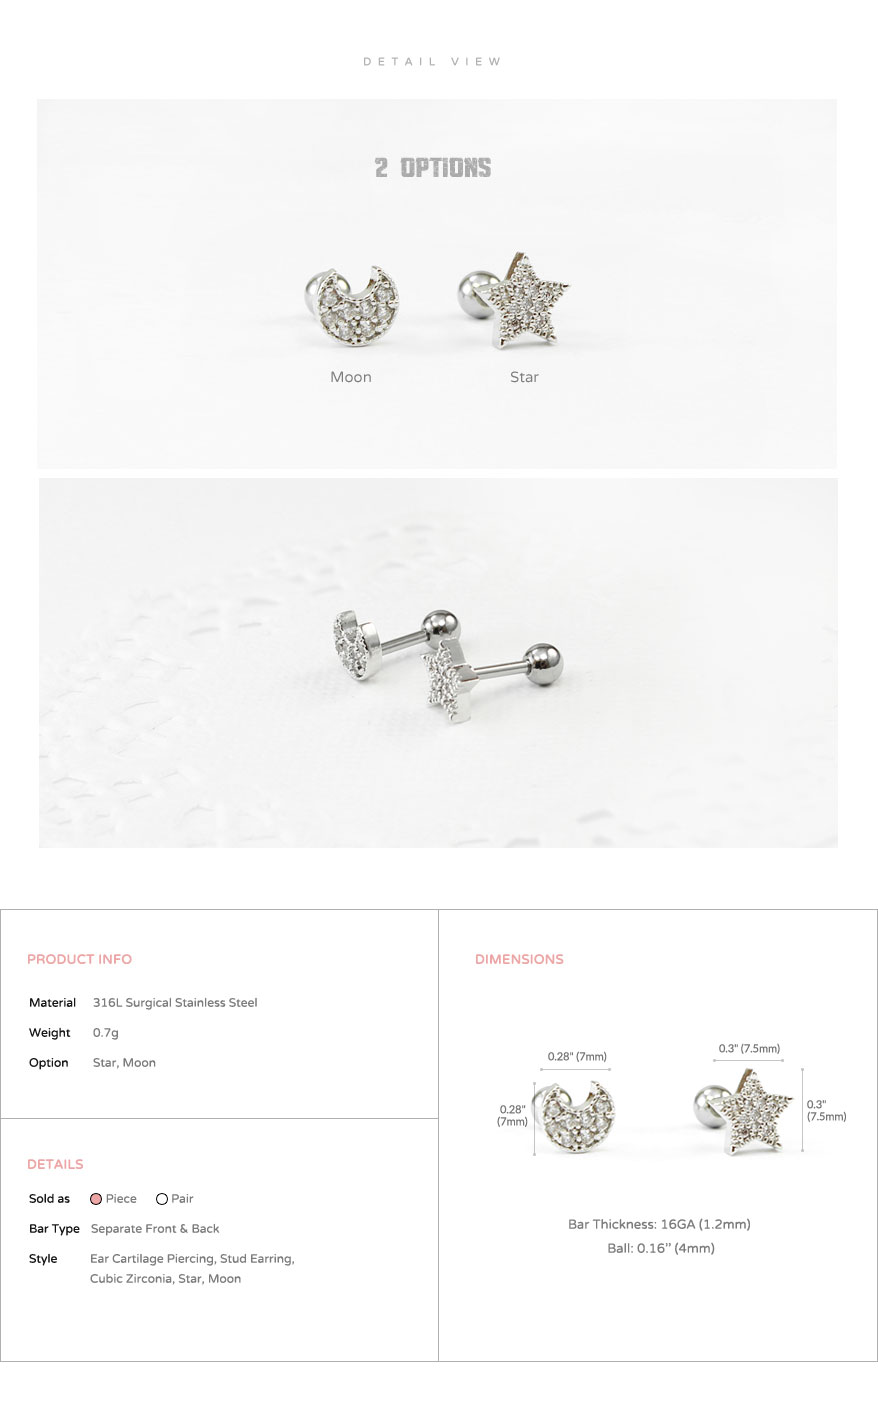 ear_studs_piercing_Cartilage_earrings_16g_316l_Surgical_Stainless_Steel_korean_asian_style_jewelry_barbell_cubic_zirconia_star_moon_5